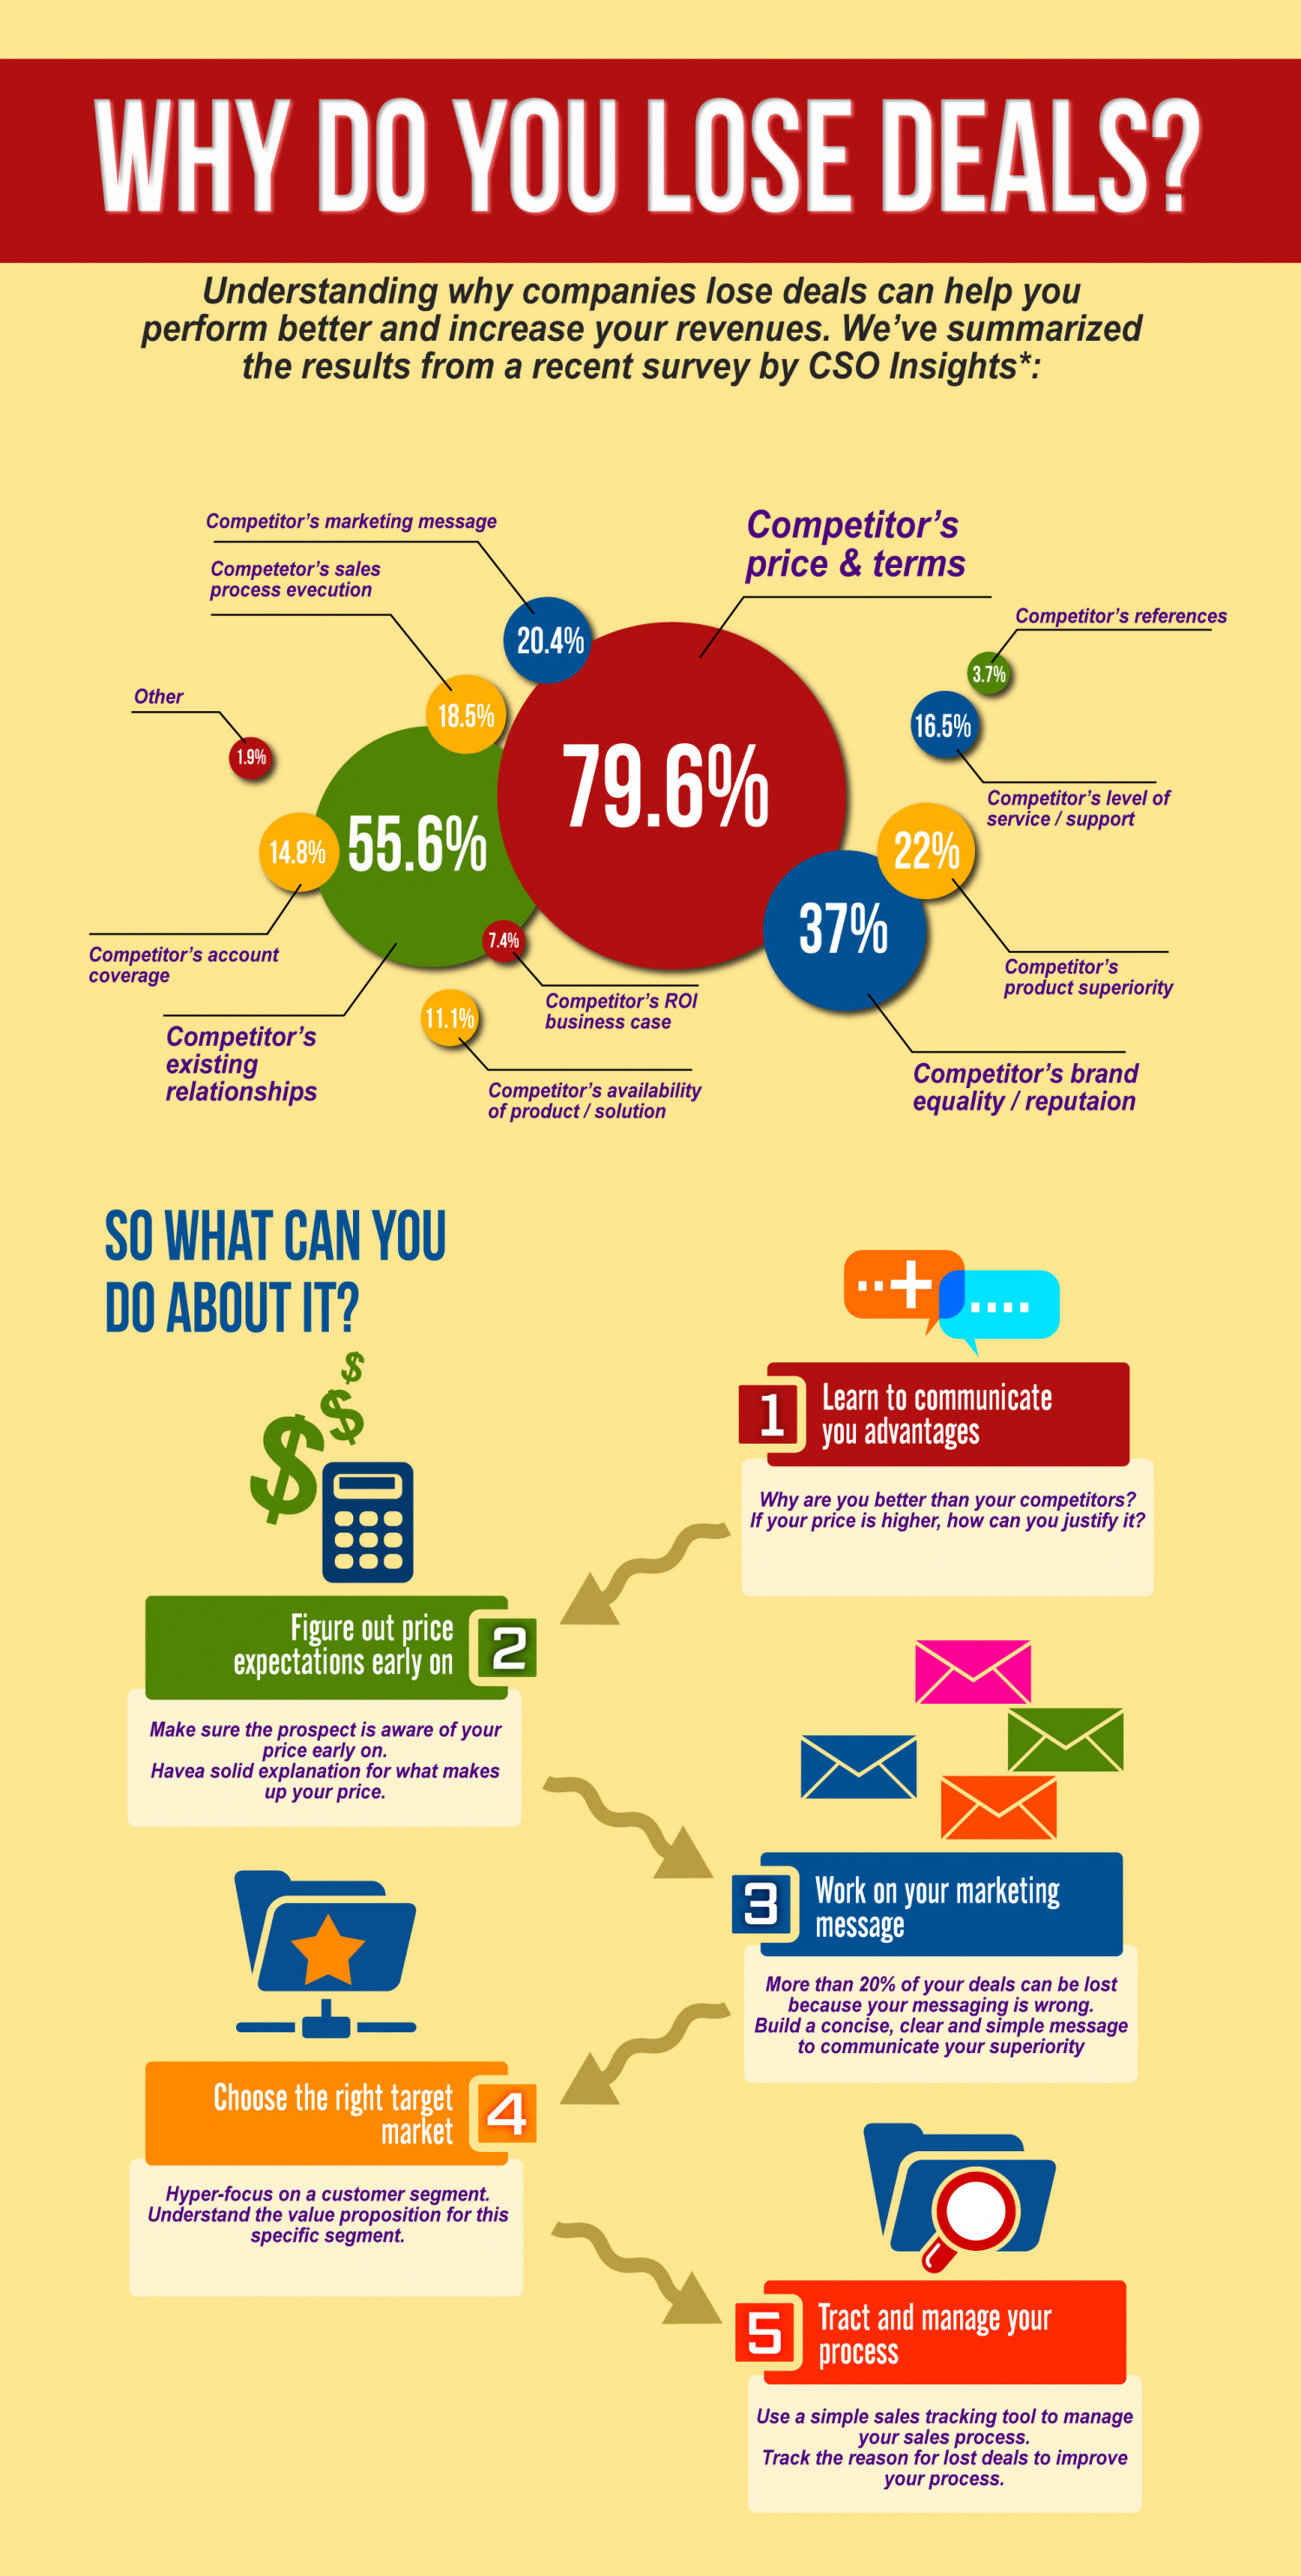 Why Do You Lose Deals? Infographic